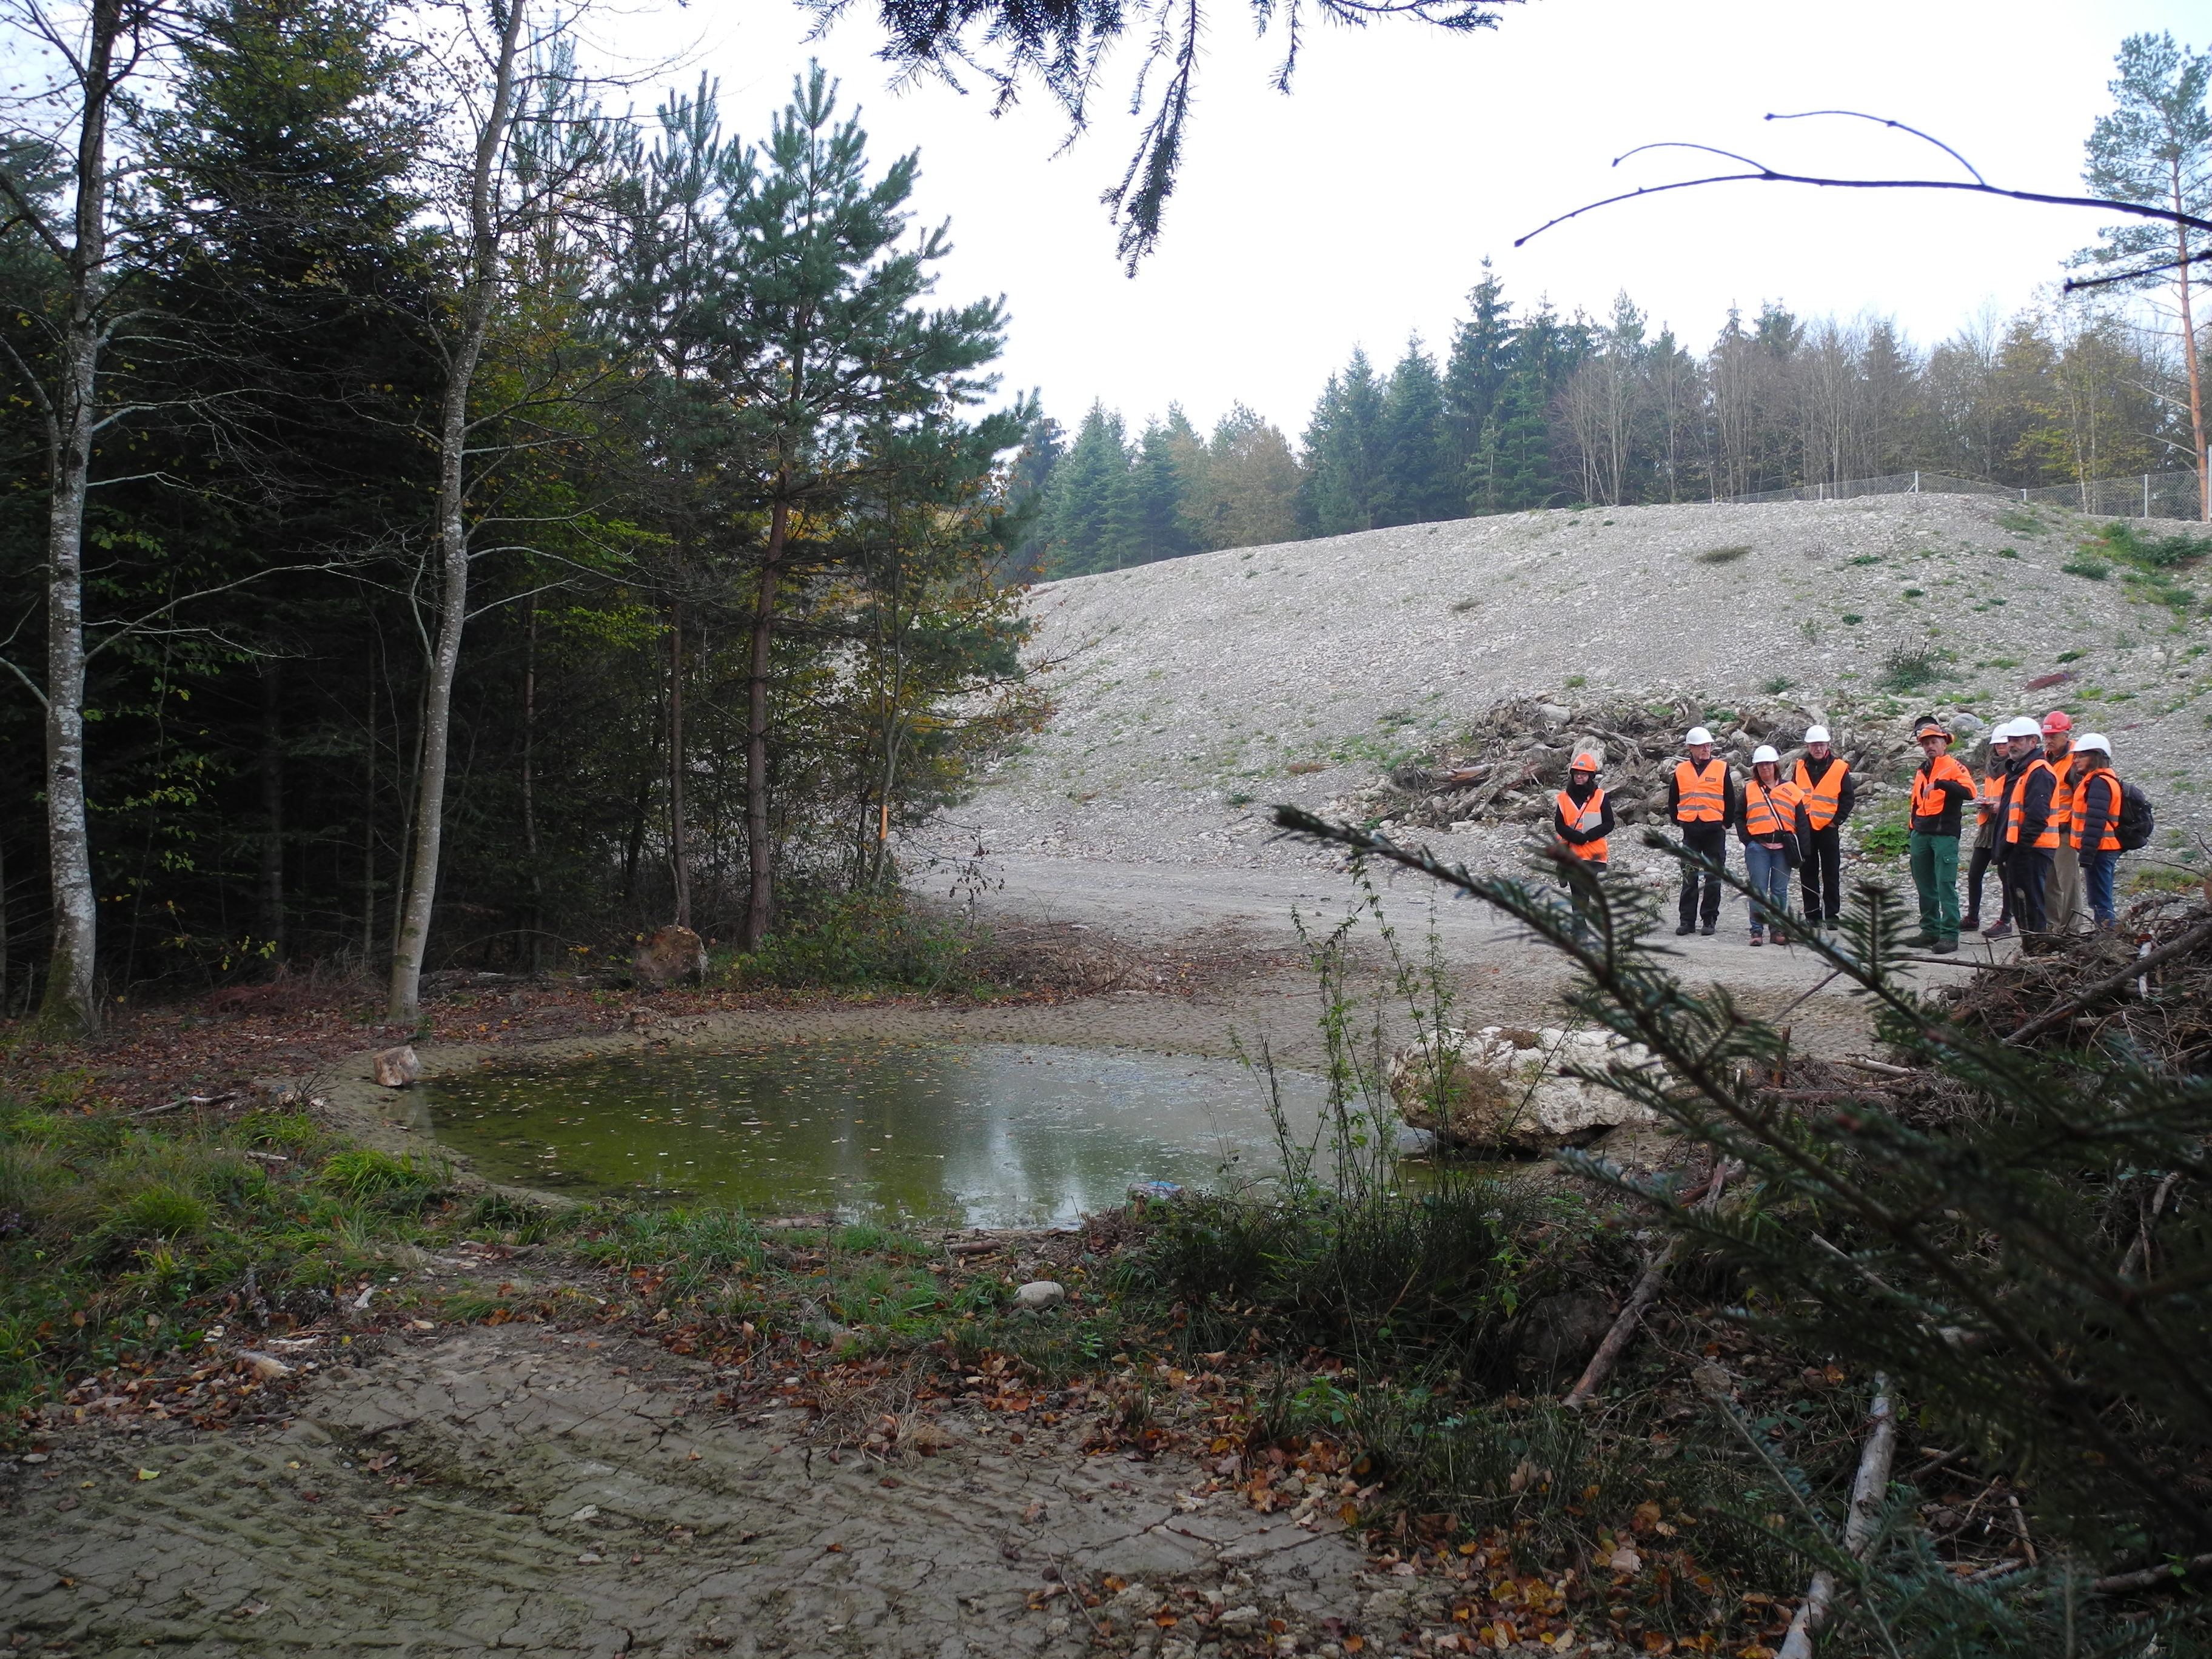 The <q>Forest</q> work group inspects one of the spawning pools provided specifically for endangered amphibians. (Photo: Paul Scherrer Institute/Christian Heid)